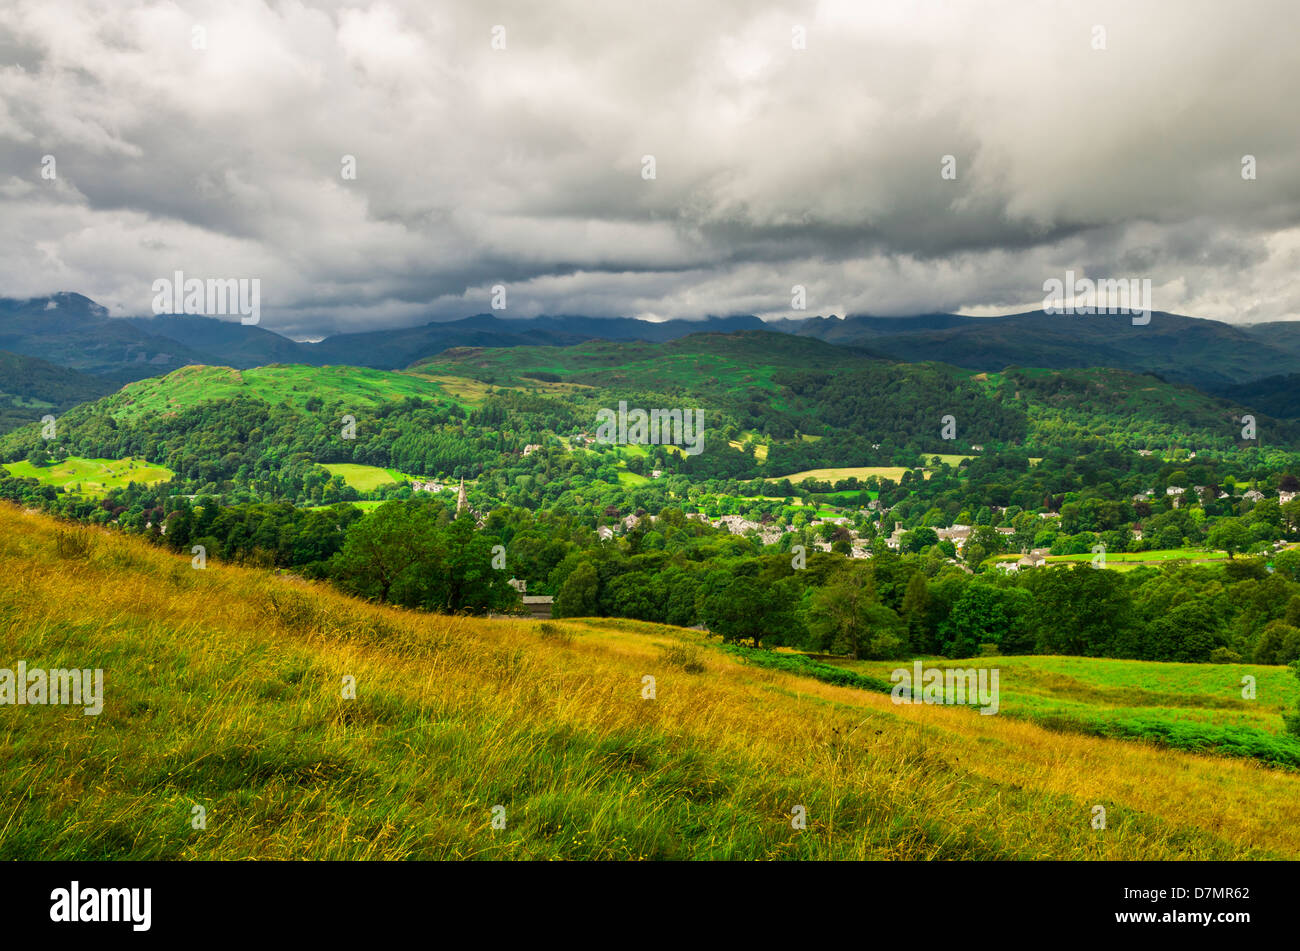 Ambleside viewed from the western slope of Wansfell in the Lake District, Cumbria, England. - Stock Image